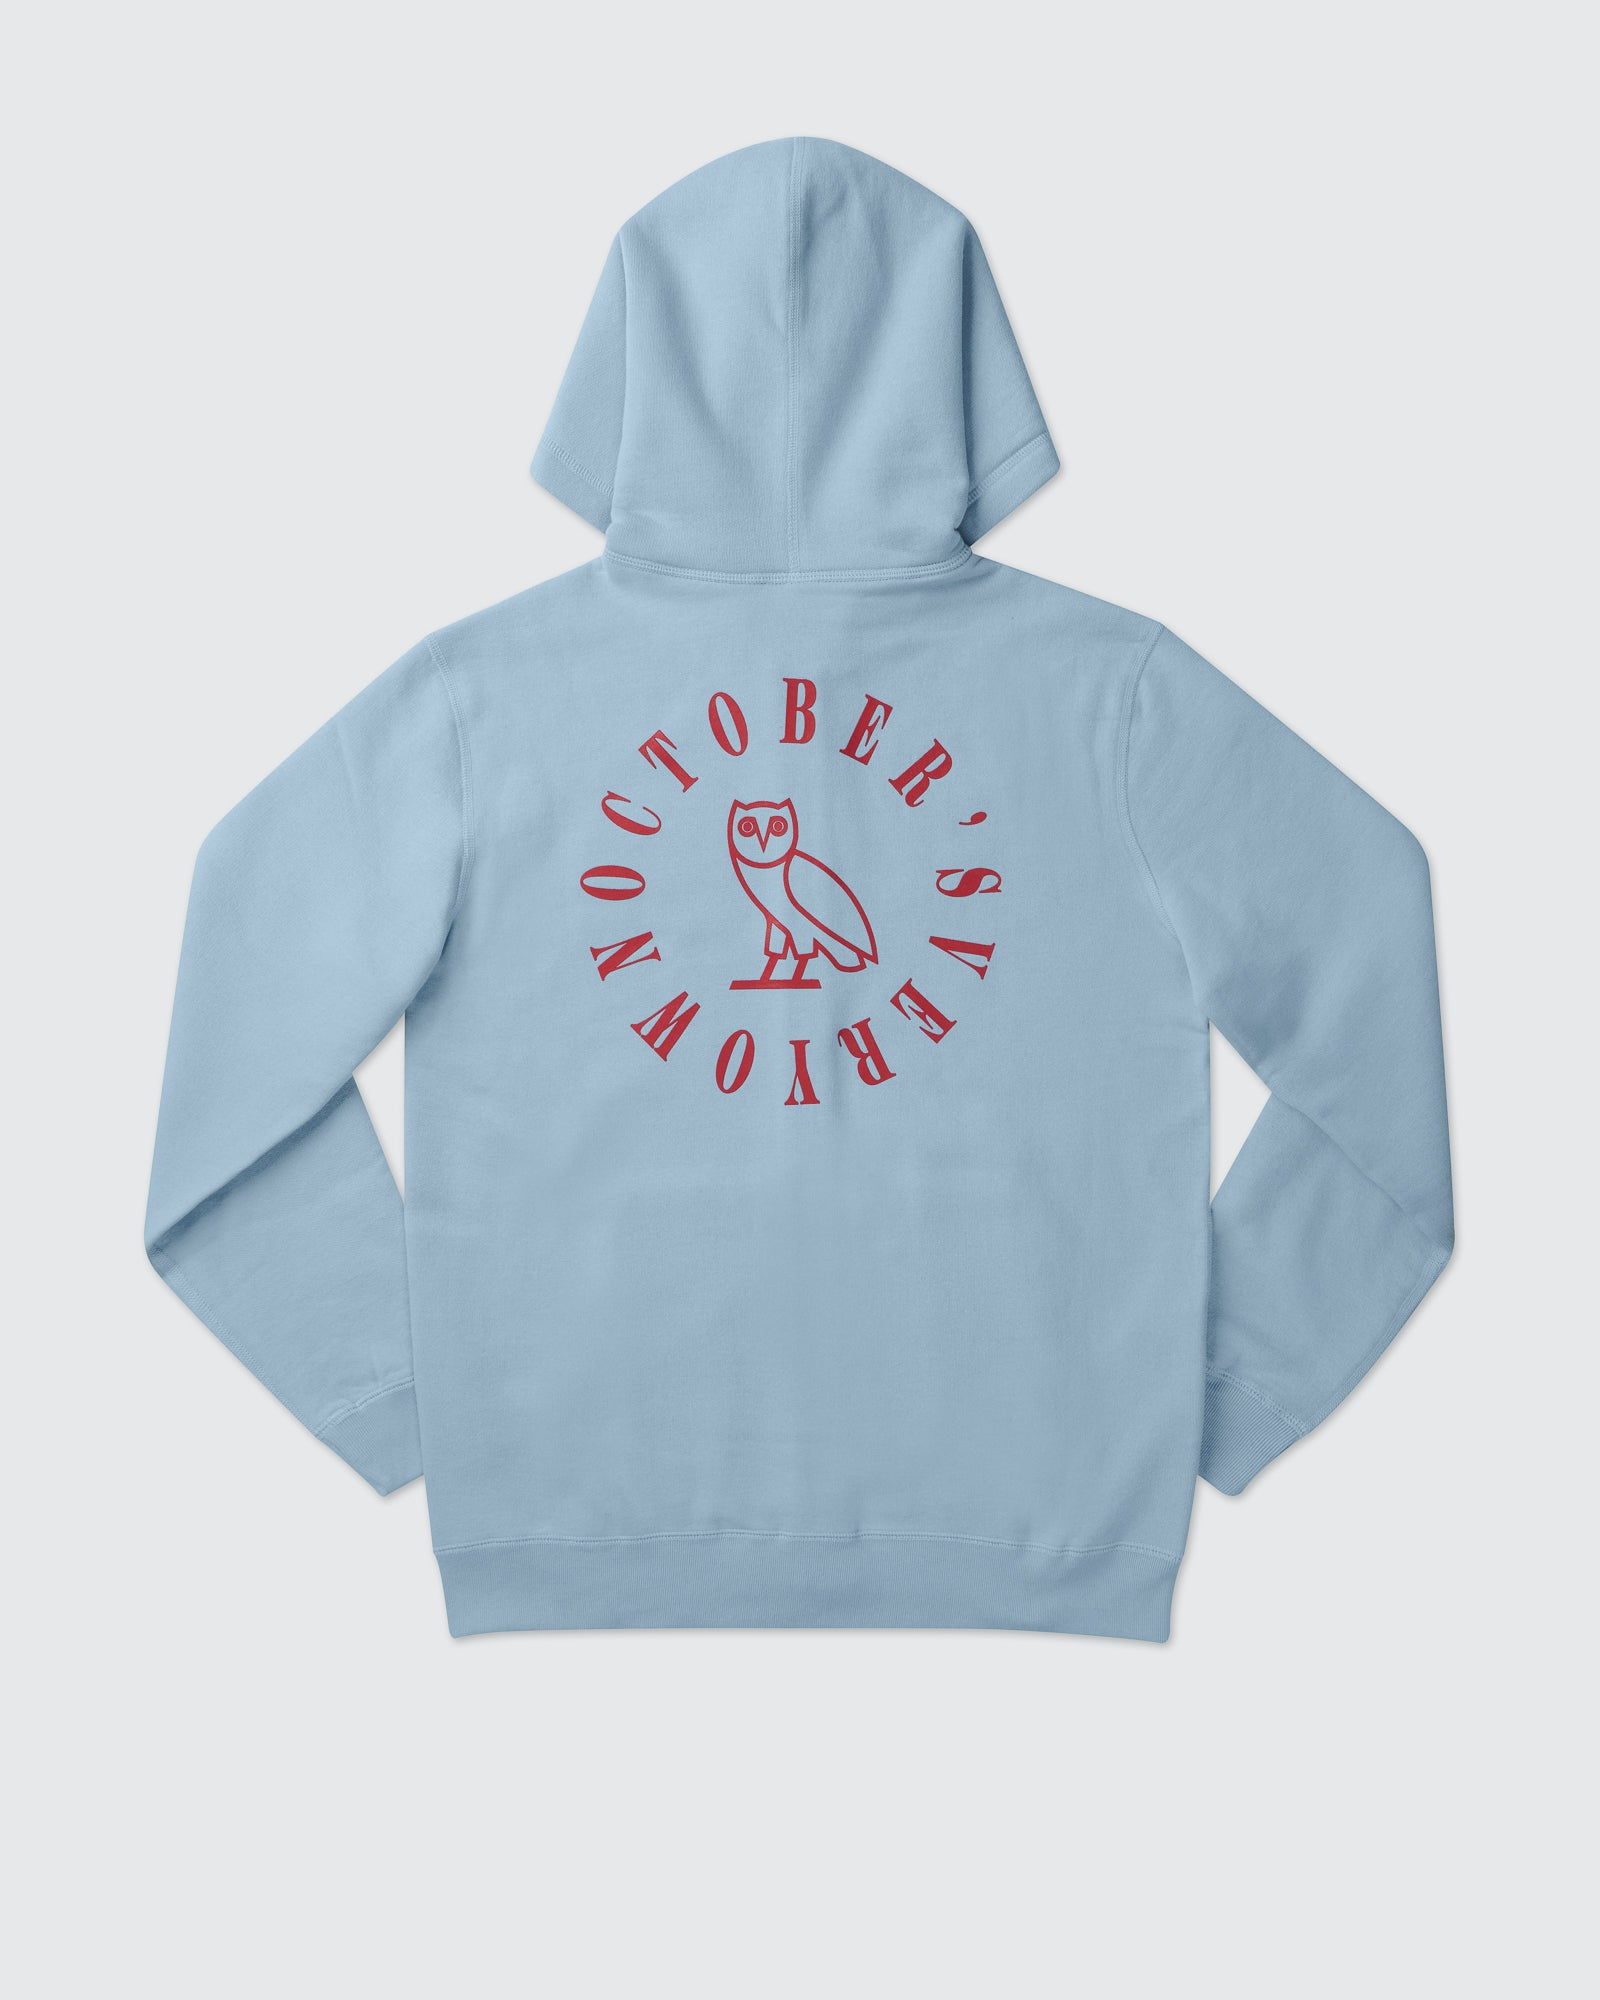 CIRCLE WORDMARK PATCH FULL-ZIP HOODIE - SKY BLUE IMAGE #4